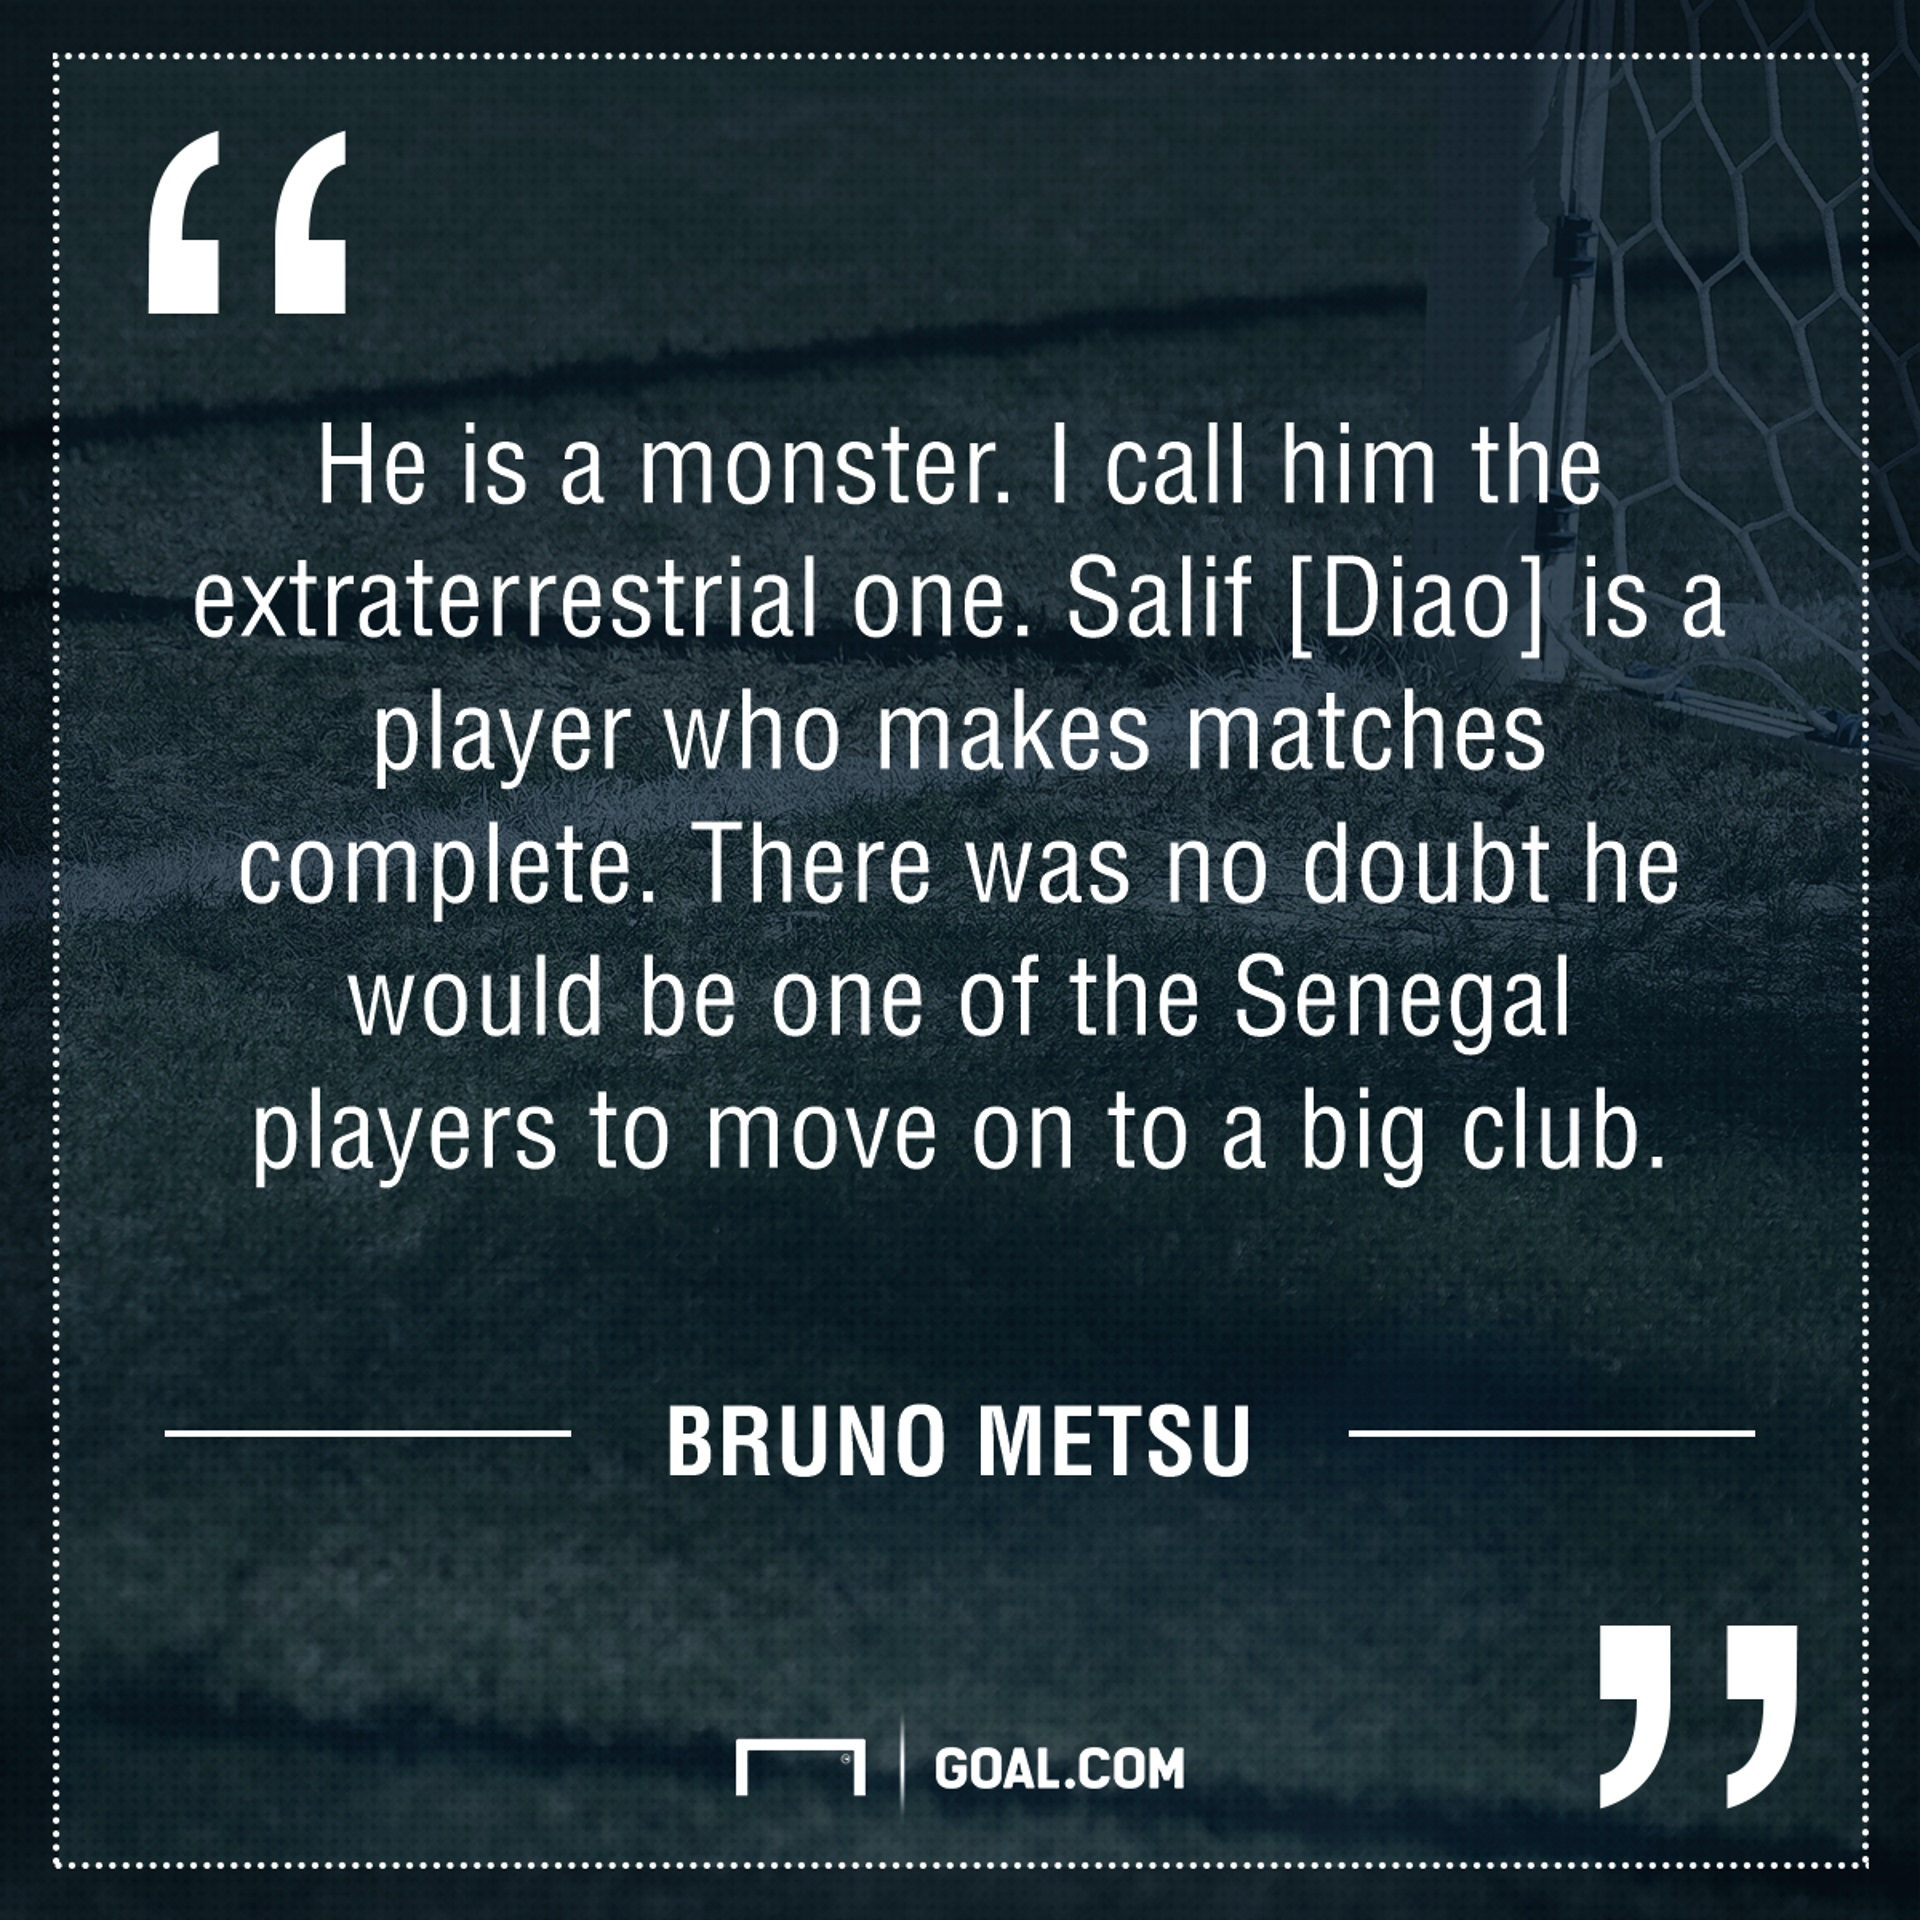 Bruno Metsu on Salif Diao